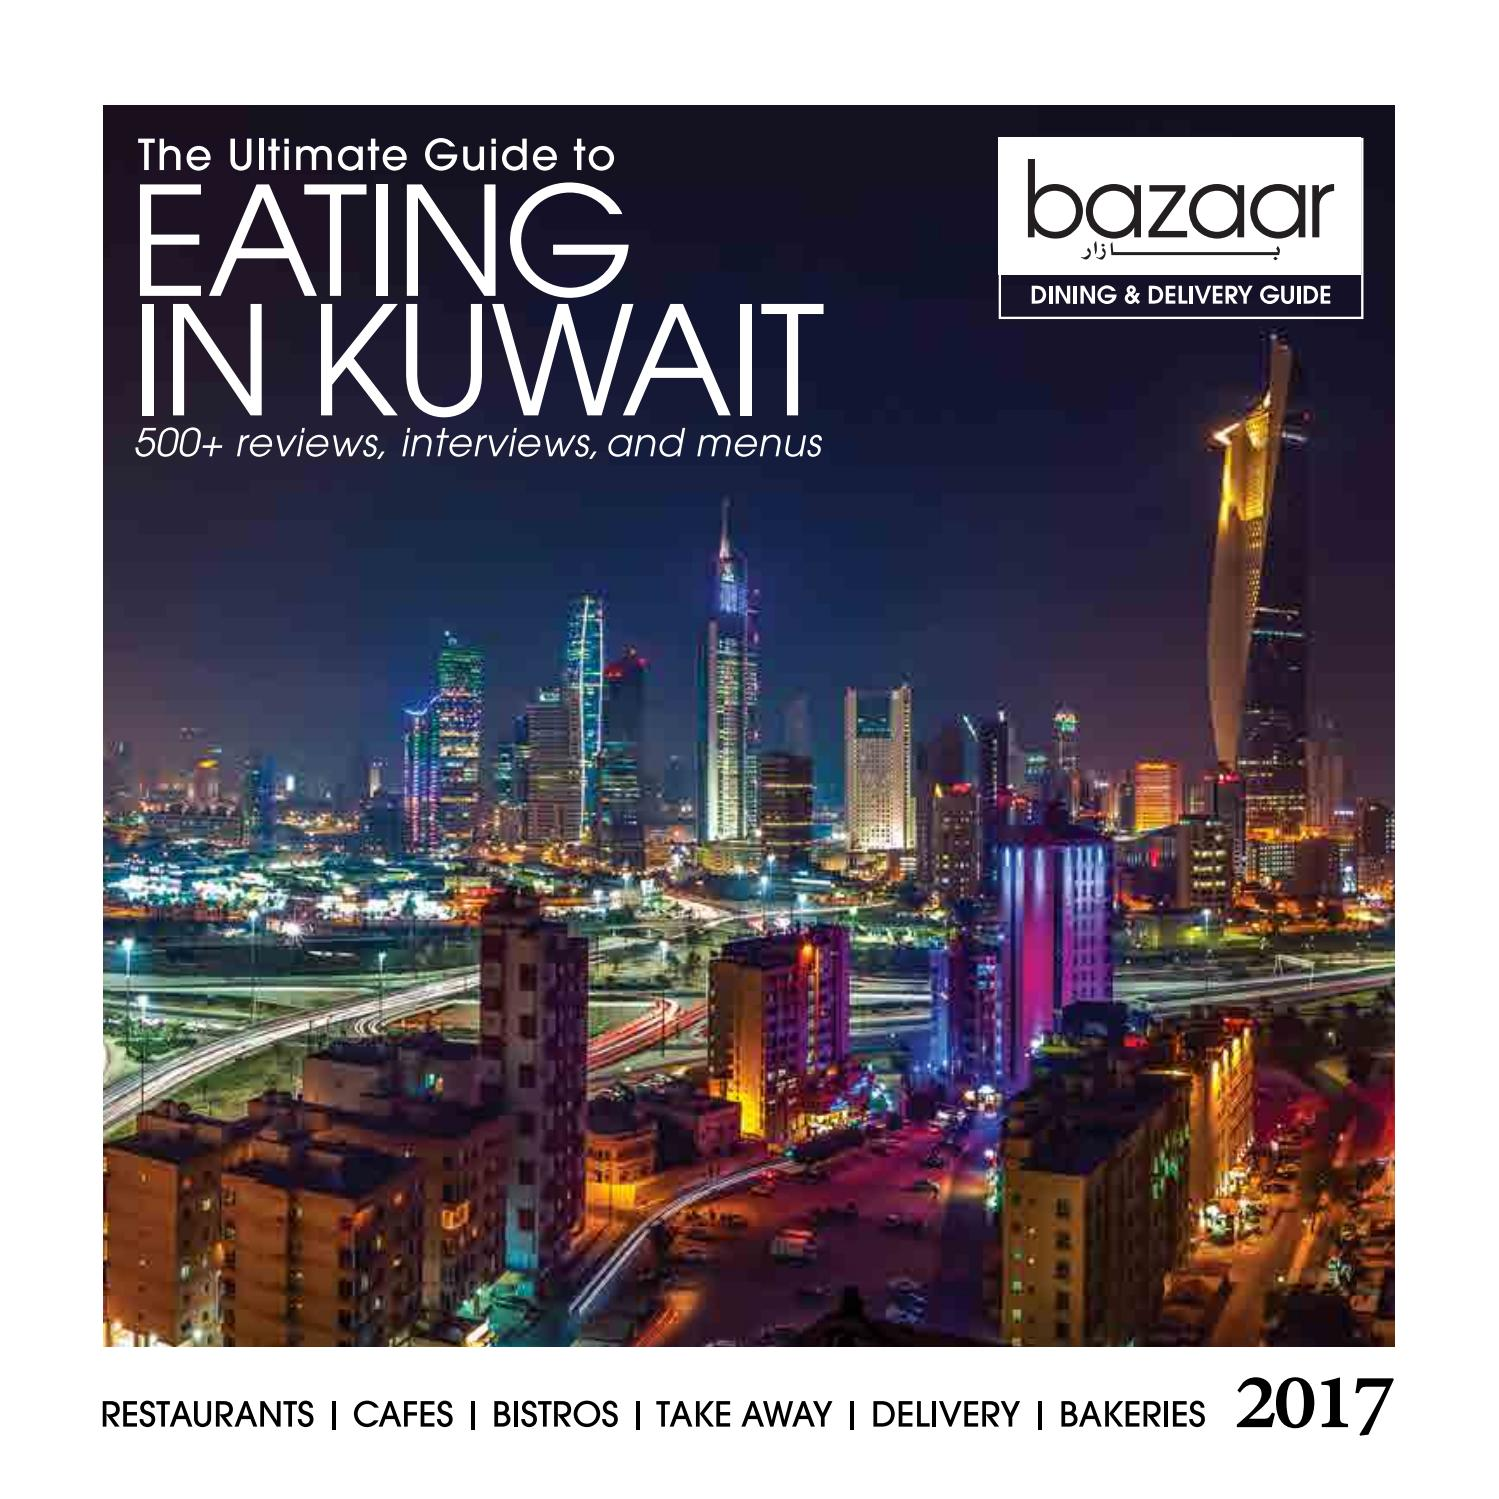 9cb035694eb34f 2017 bazaar dining and delivery guide by bazaar magazine - issuu